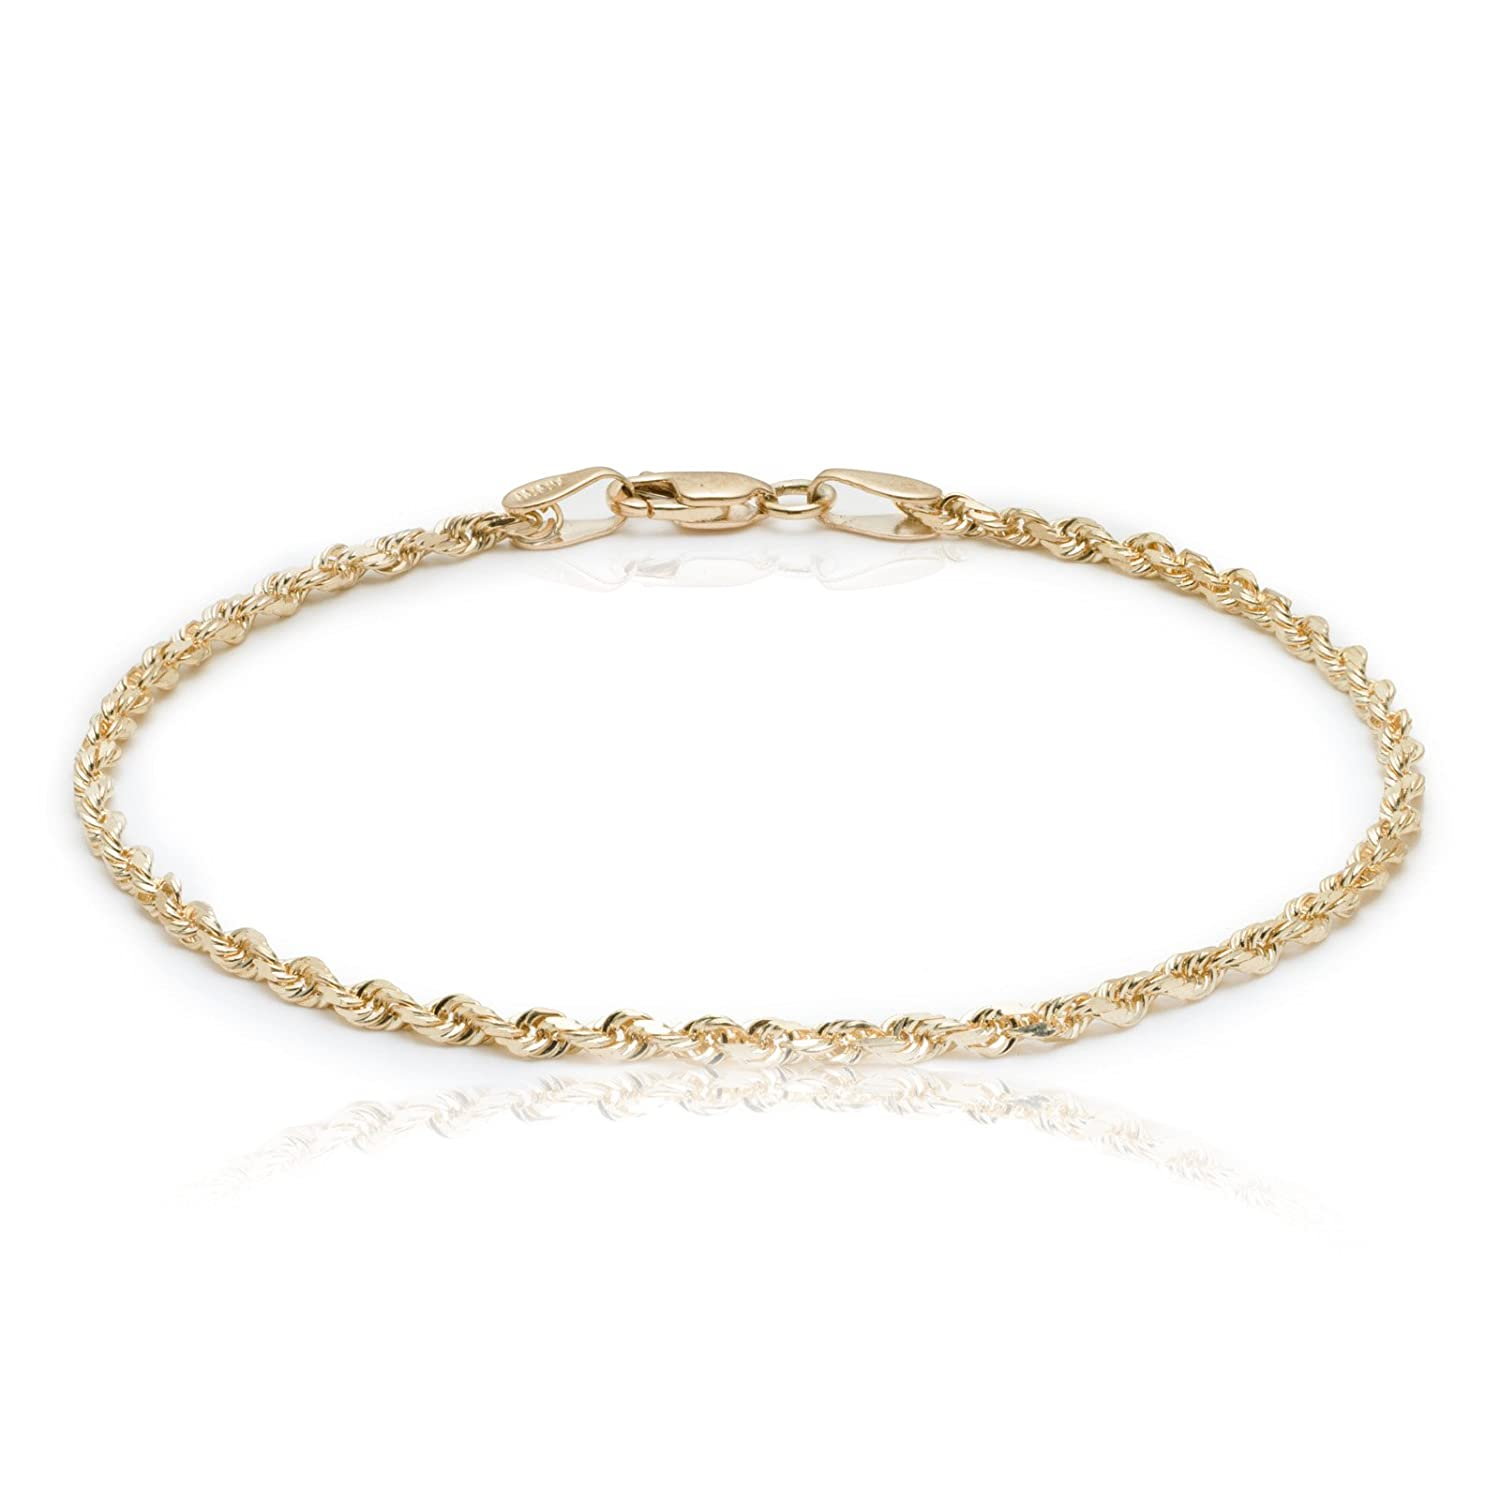 chain gold herringbone similar bracelet white box like over gift ankle anklet s items yellow and base